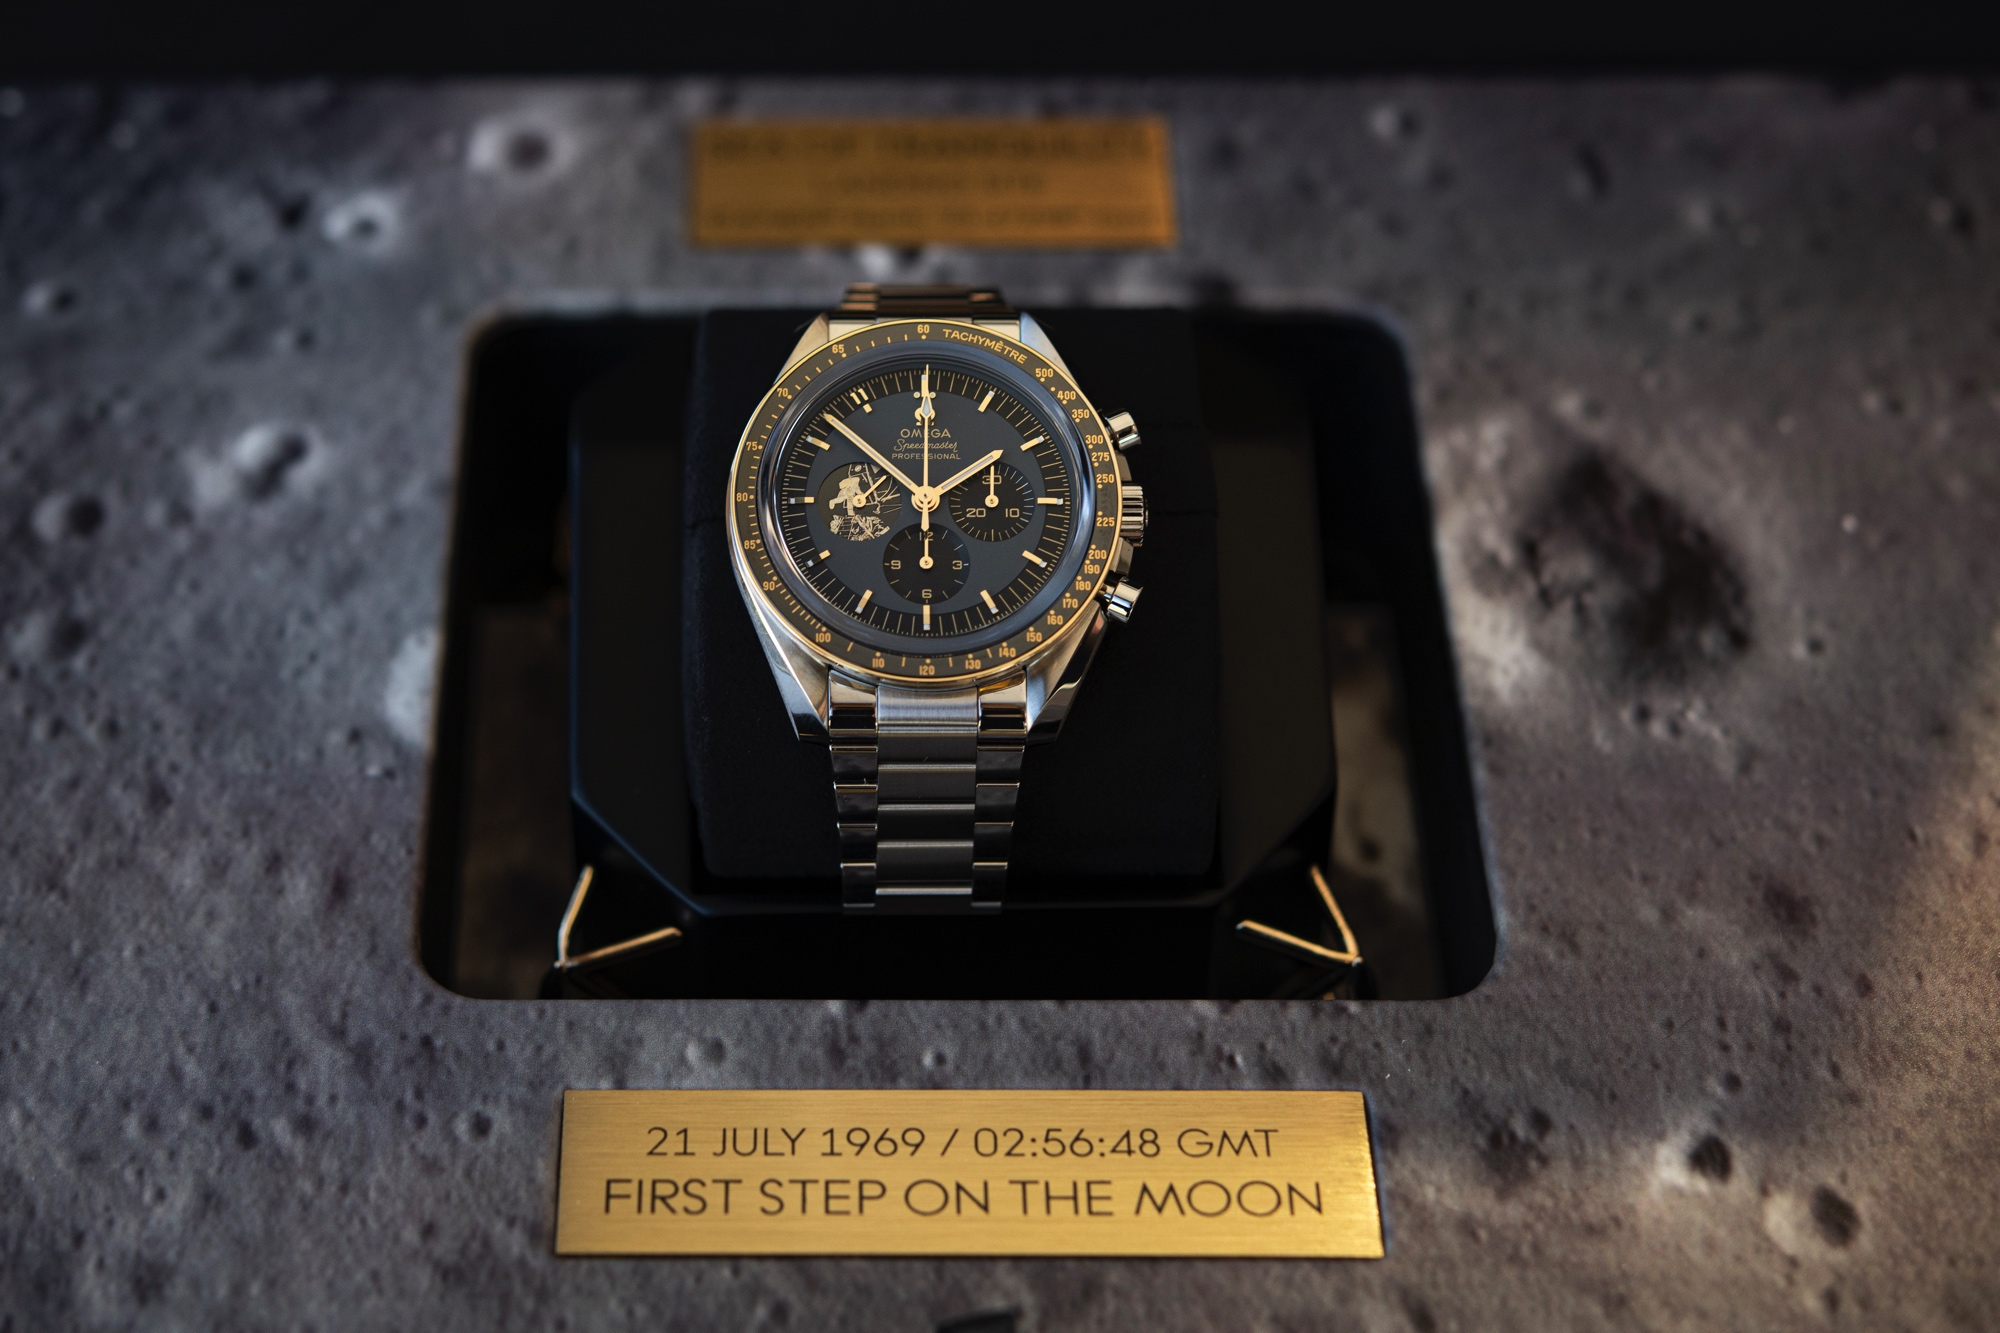 Speedmaster Professional Moonwatch 50th Anniversary Limited Edition